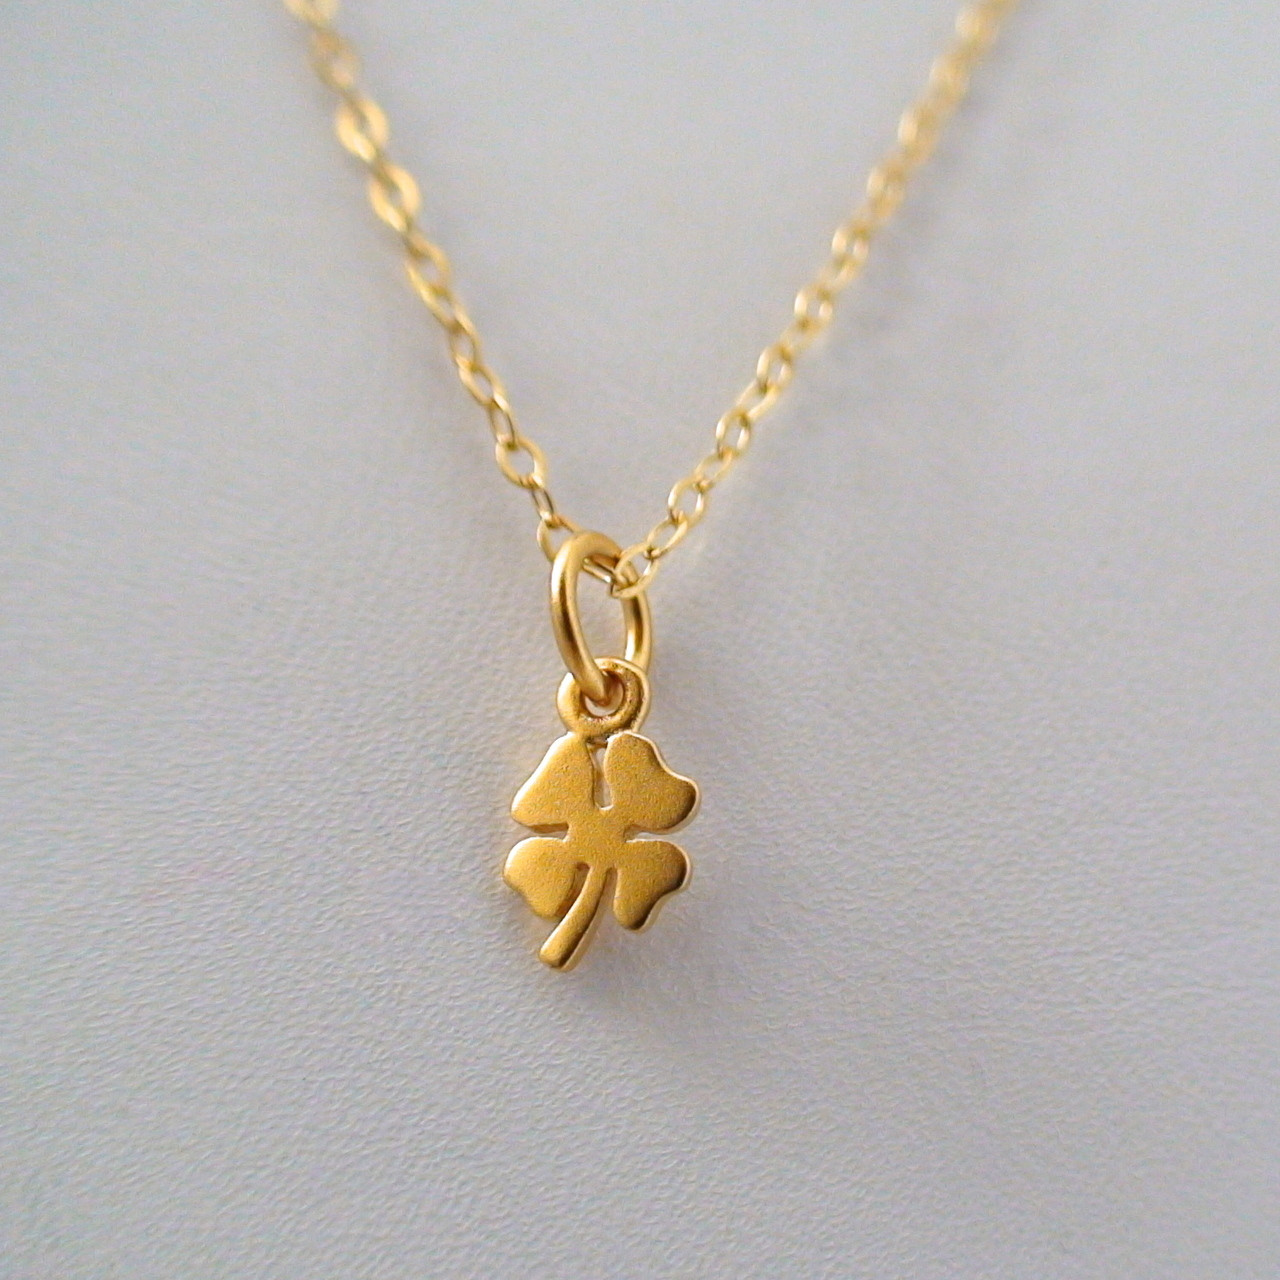 Best Tiny Four Leaf Clover Necklace - 24k Gold Plated Sterling UH89